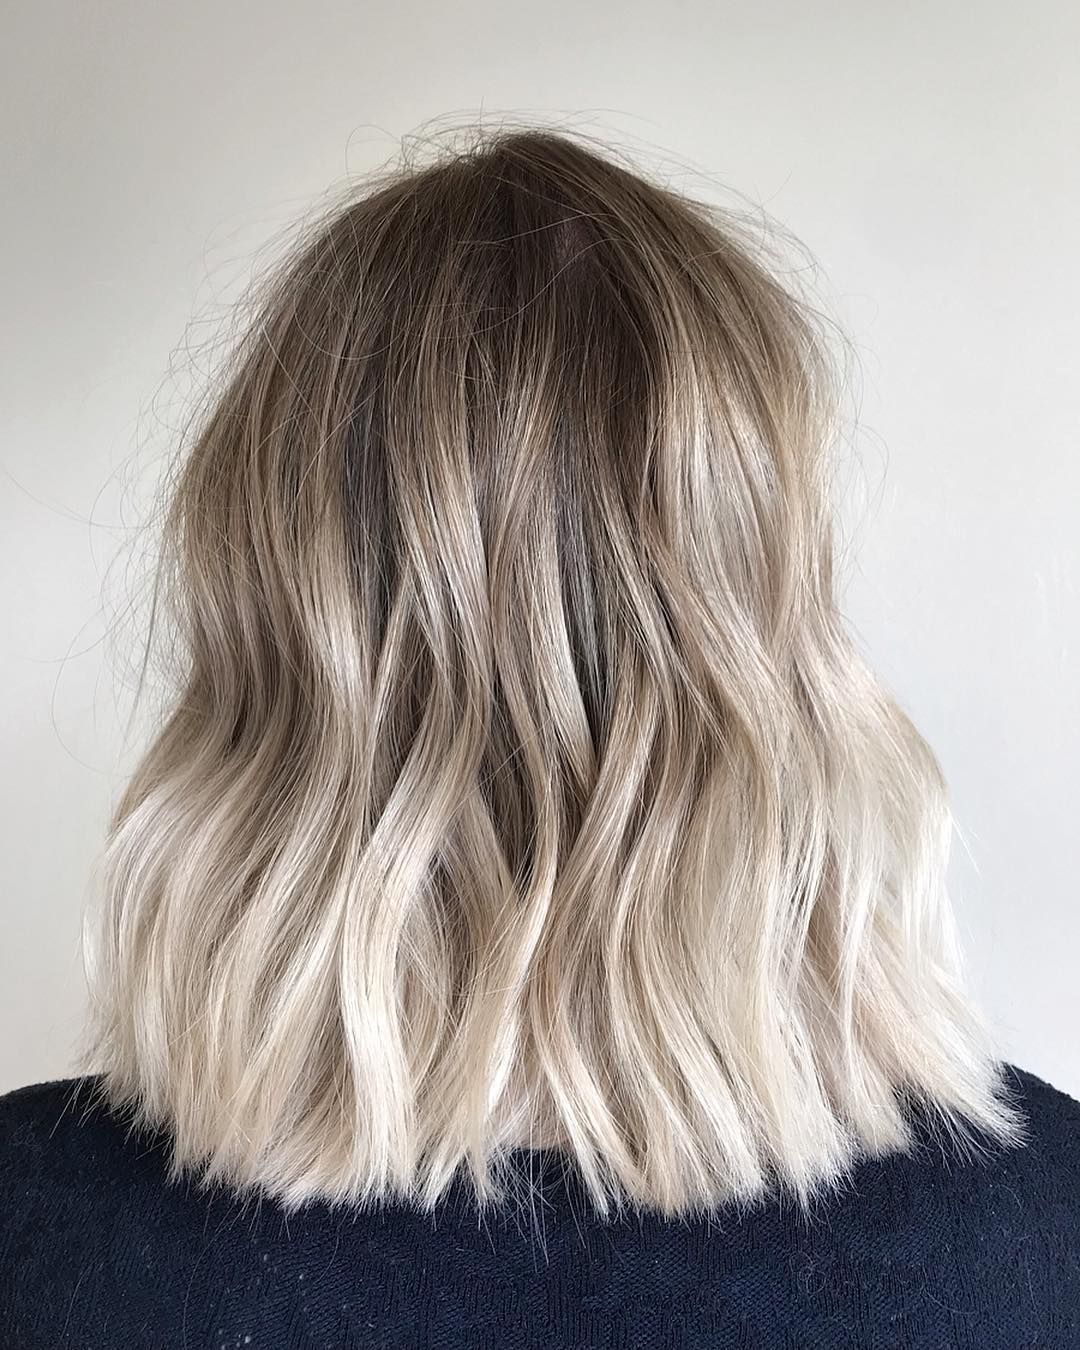 "@tbdhair on Instagram: ""cool toned balayage with a hint of silver @wellahair @lorealhair @dysonhair @ghdhair @theouai #blondehair #blonde #balayage…"""